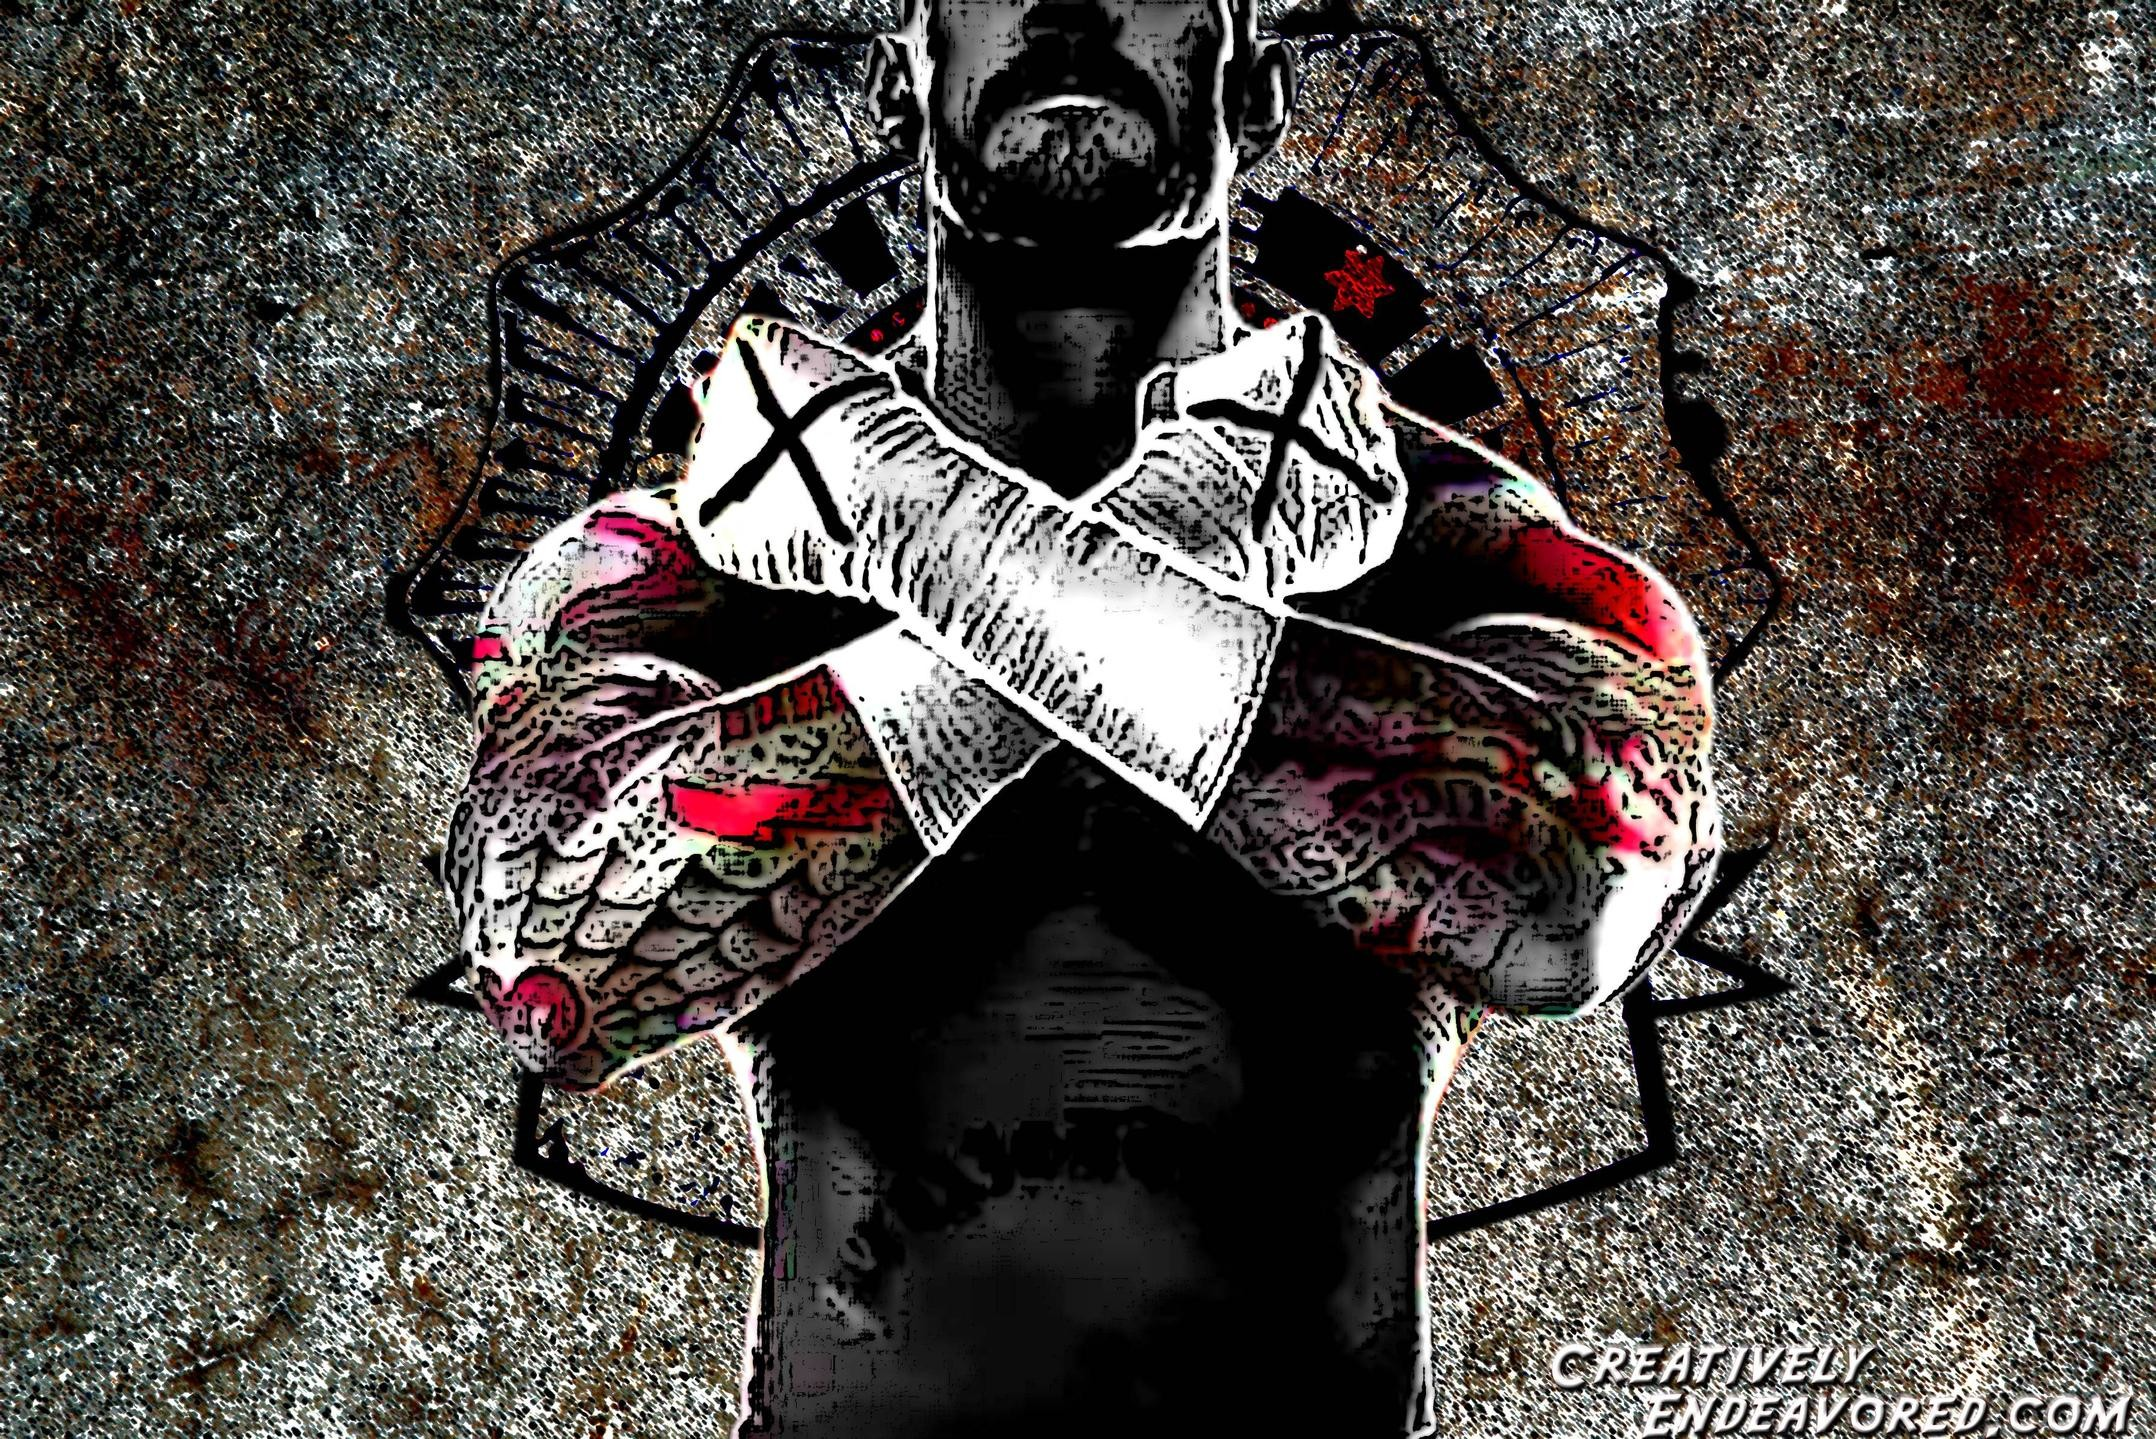 Res: 2156x1439, Cm Punk Wallpaper